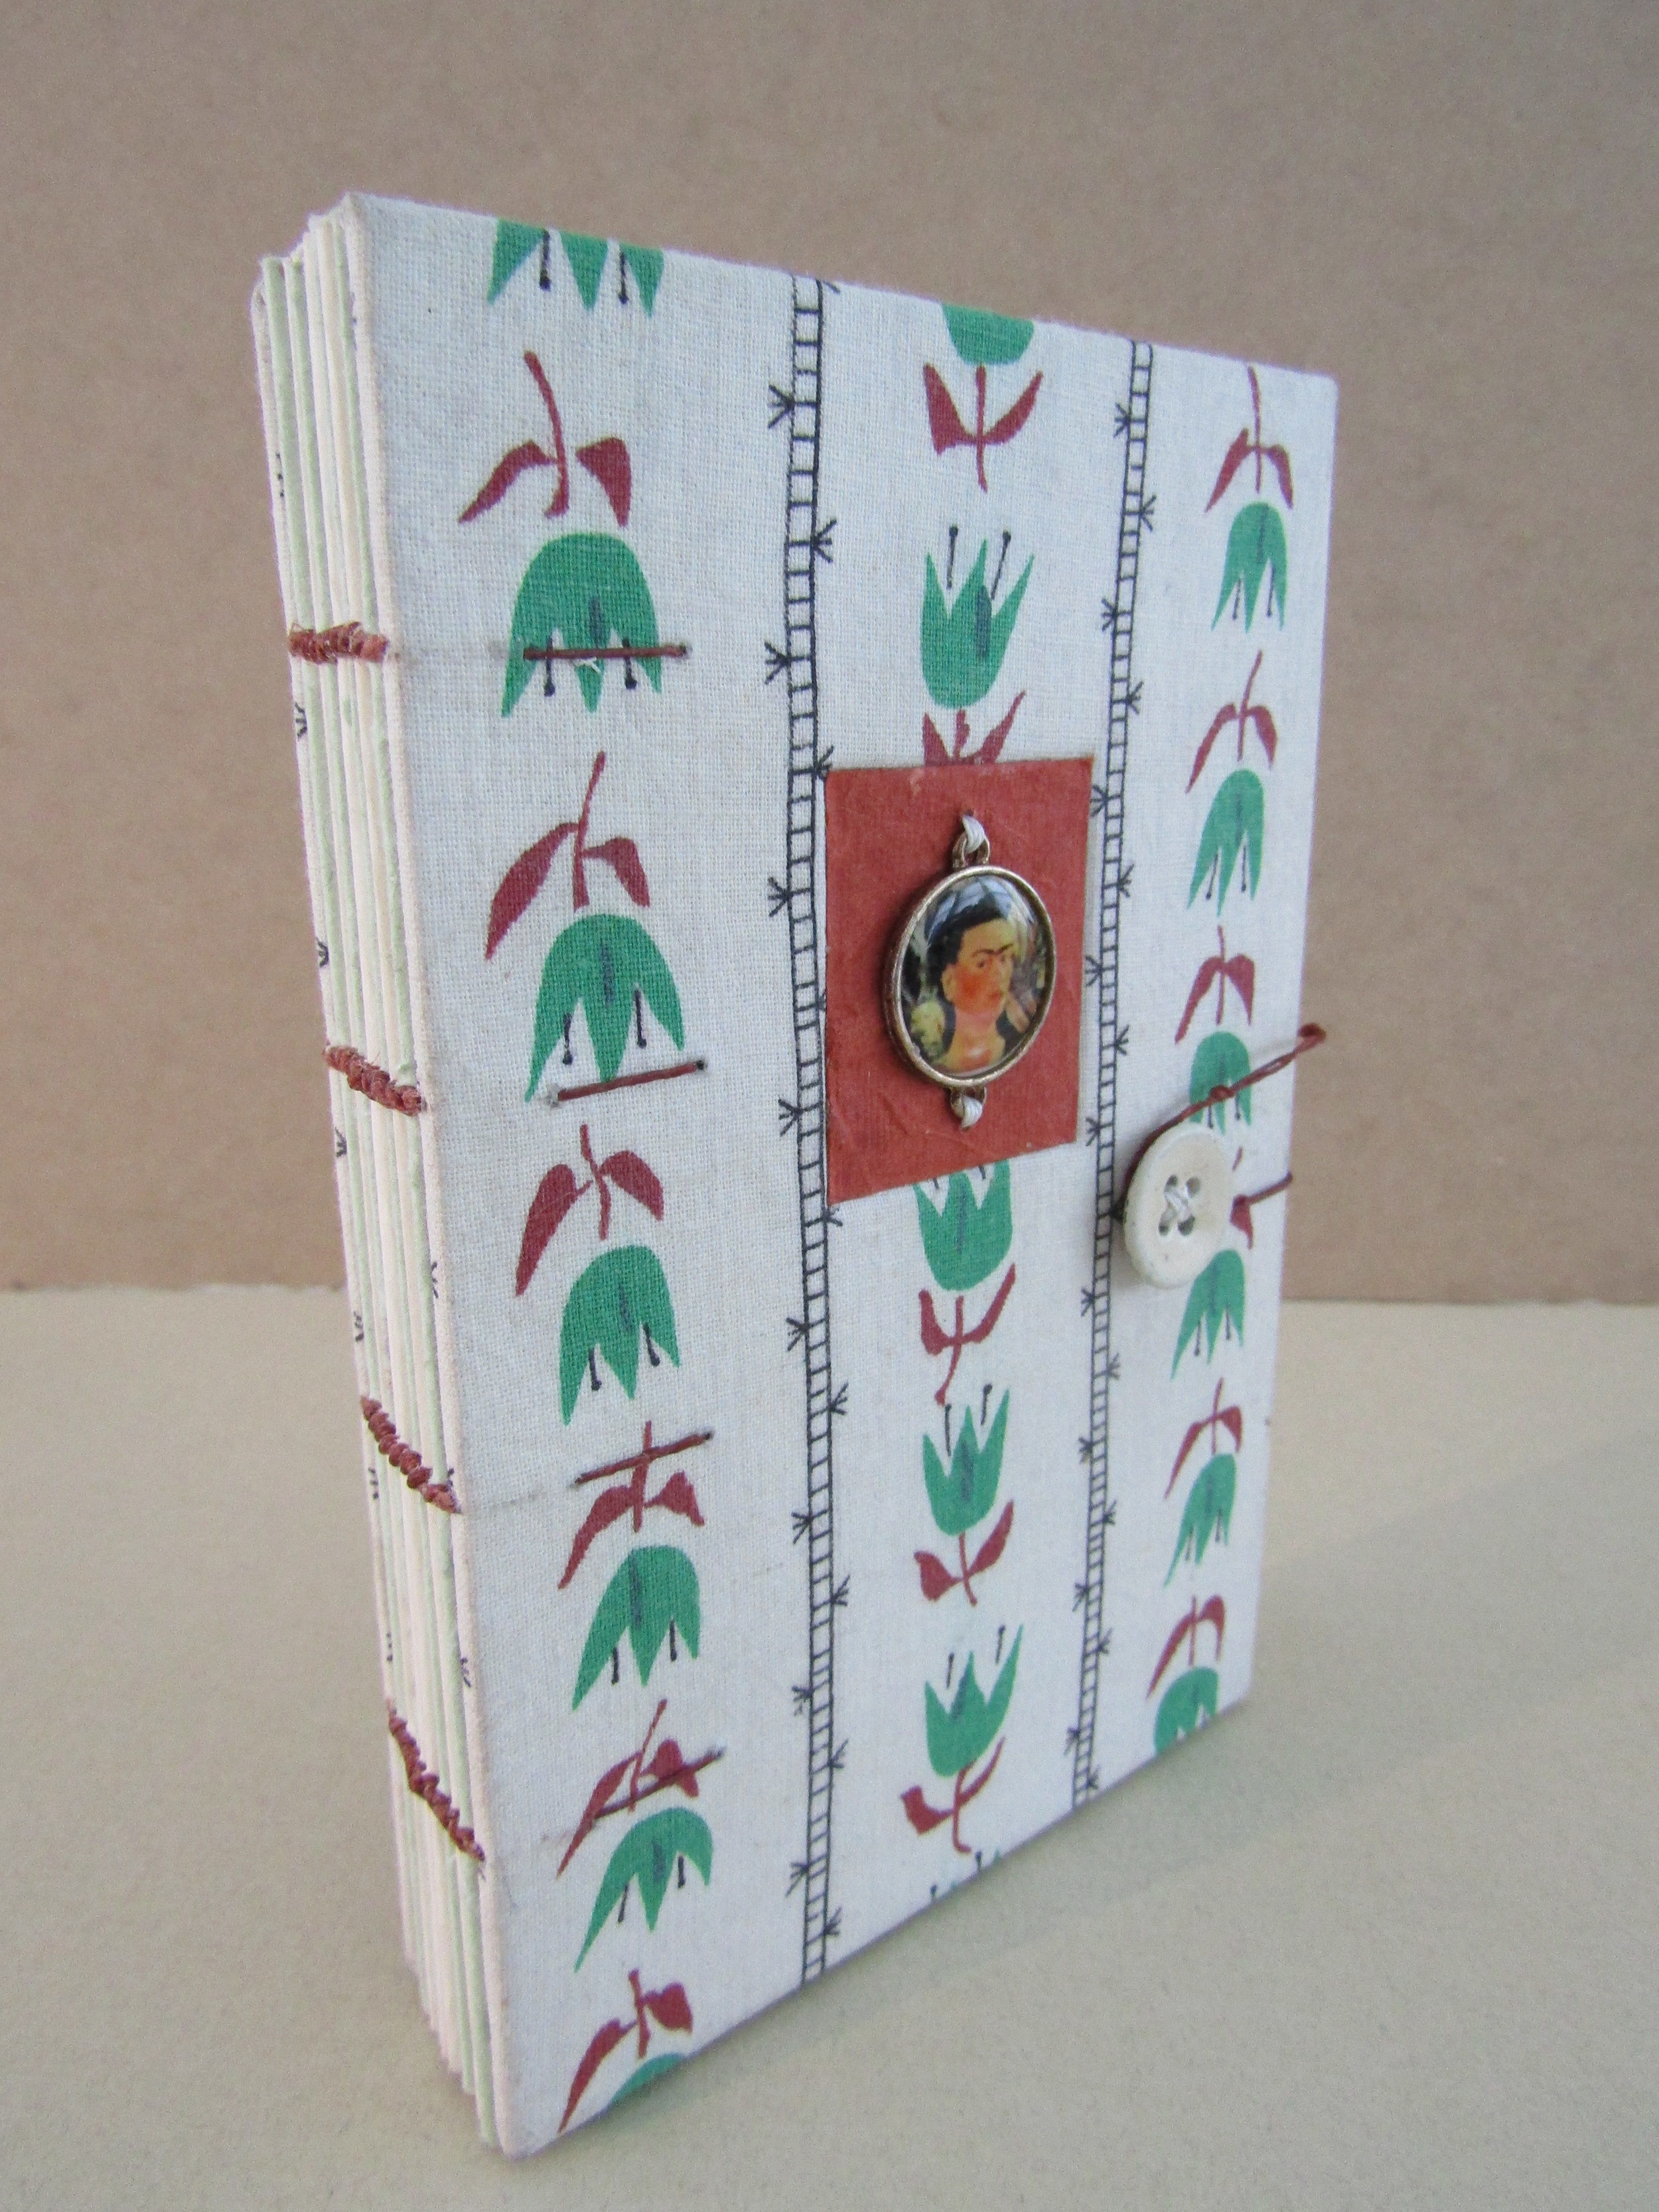 Four Needle Coptic Book With Backed Fabric and Sewn Embellishment on Covers